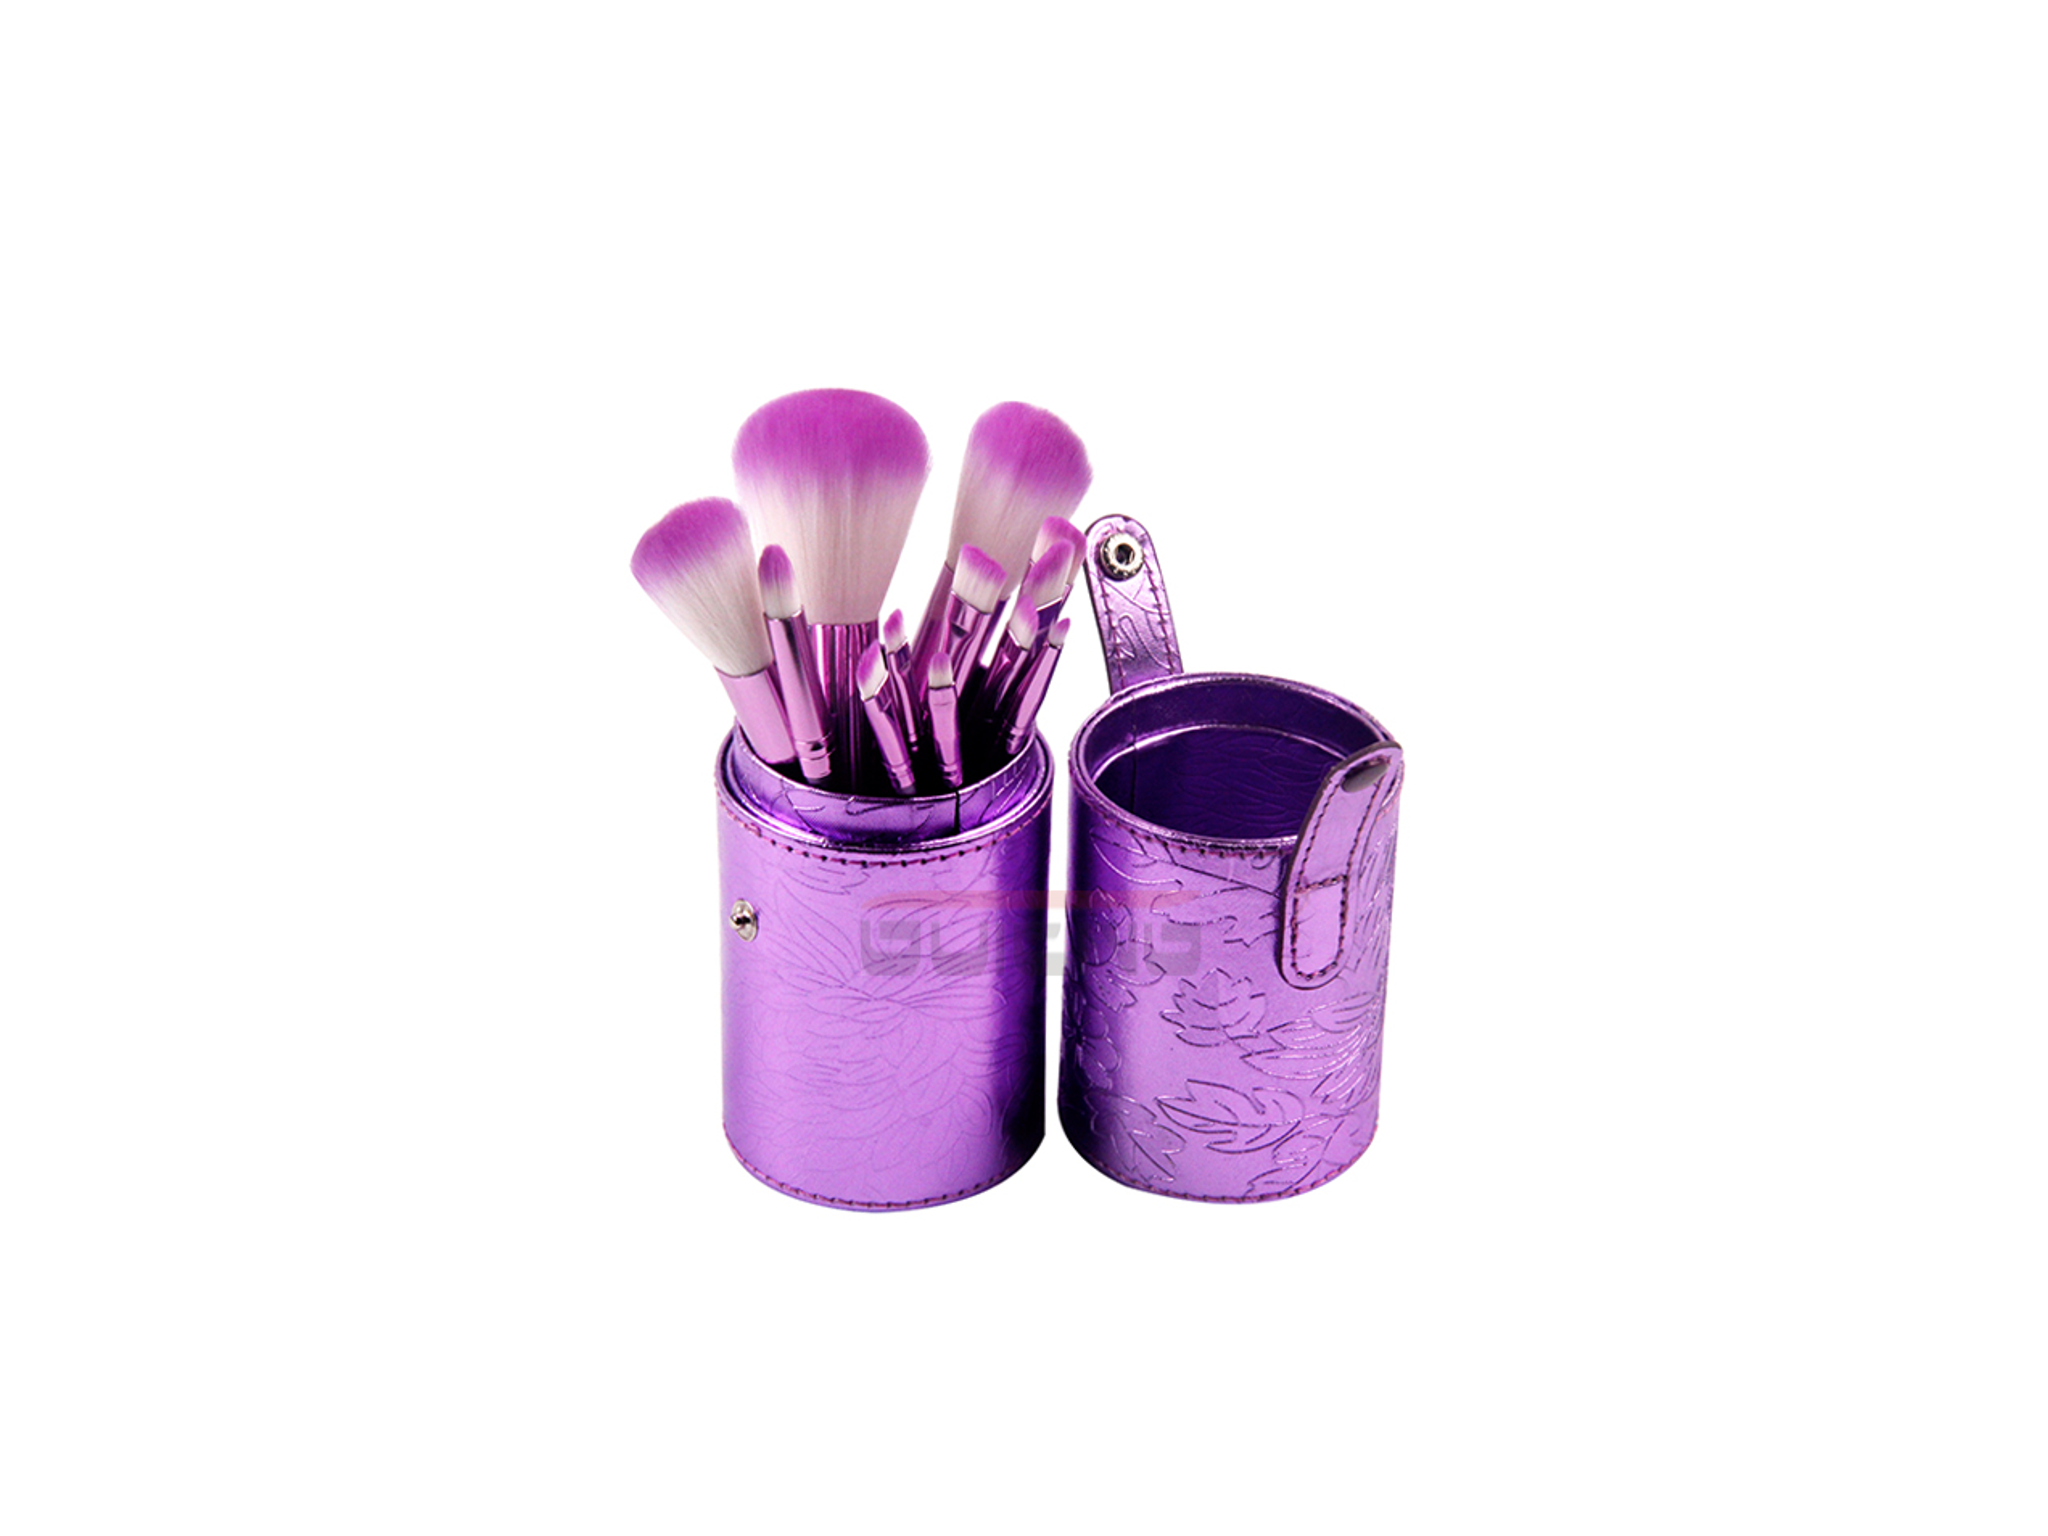 12 Piece Makeup Brush Set with Cylinder Cup Holder